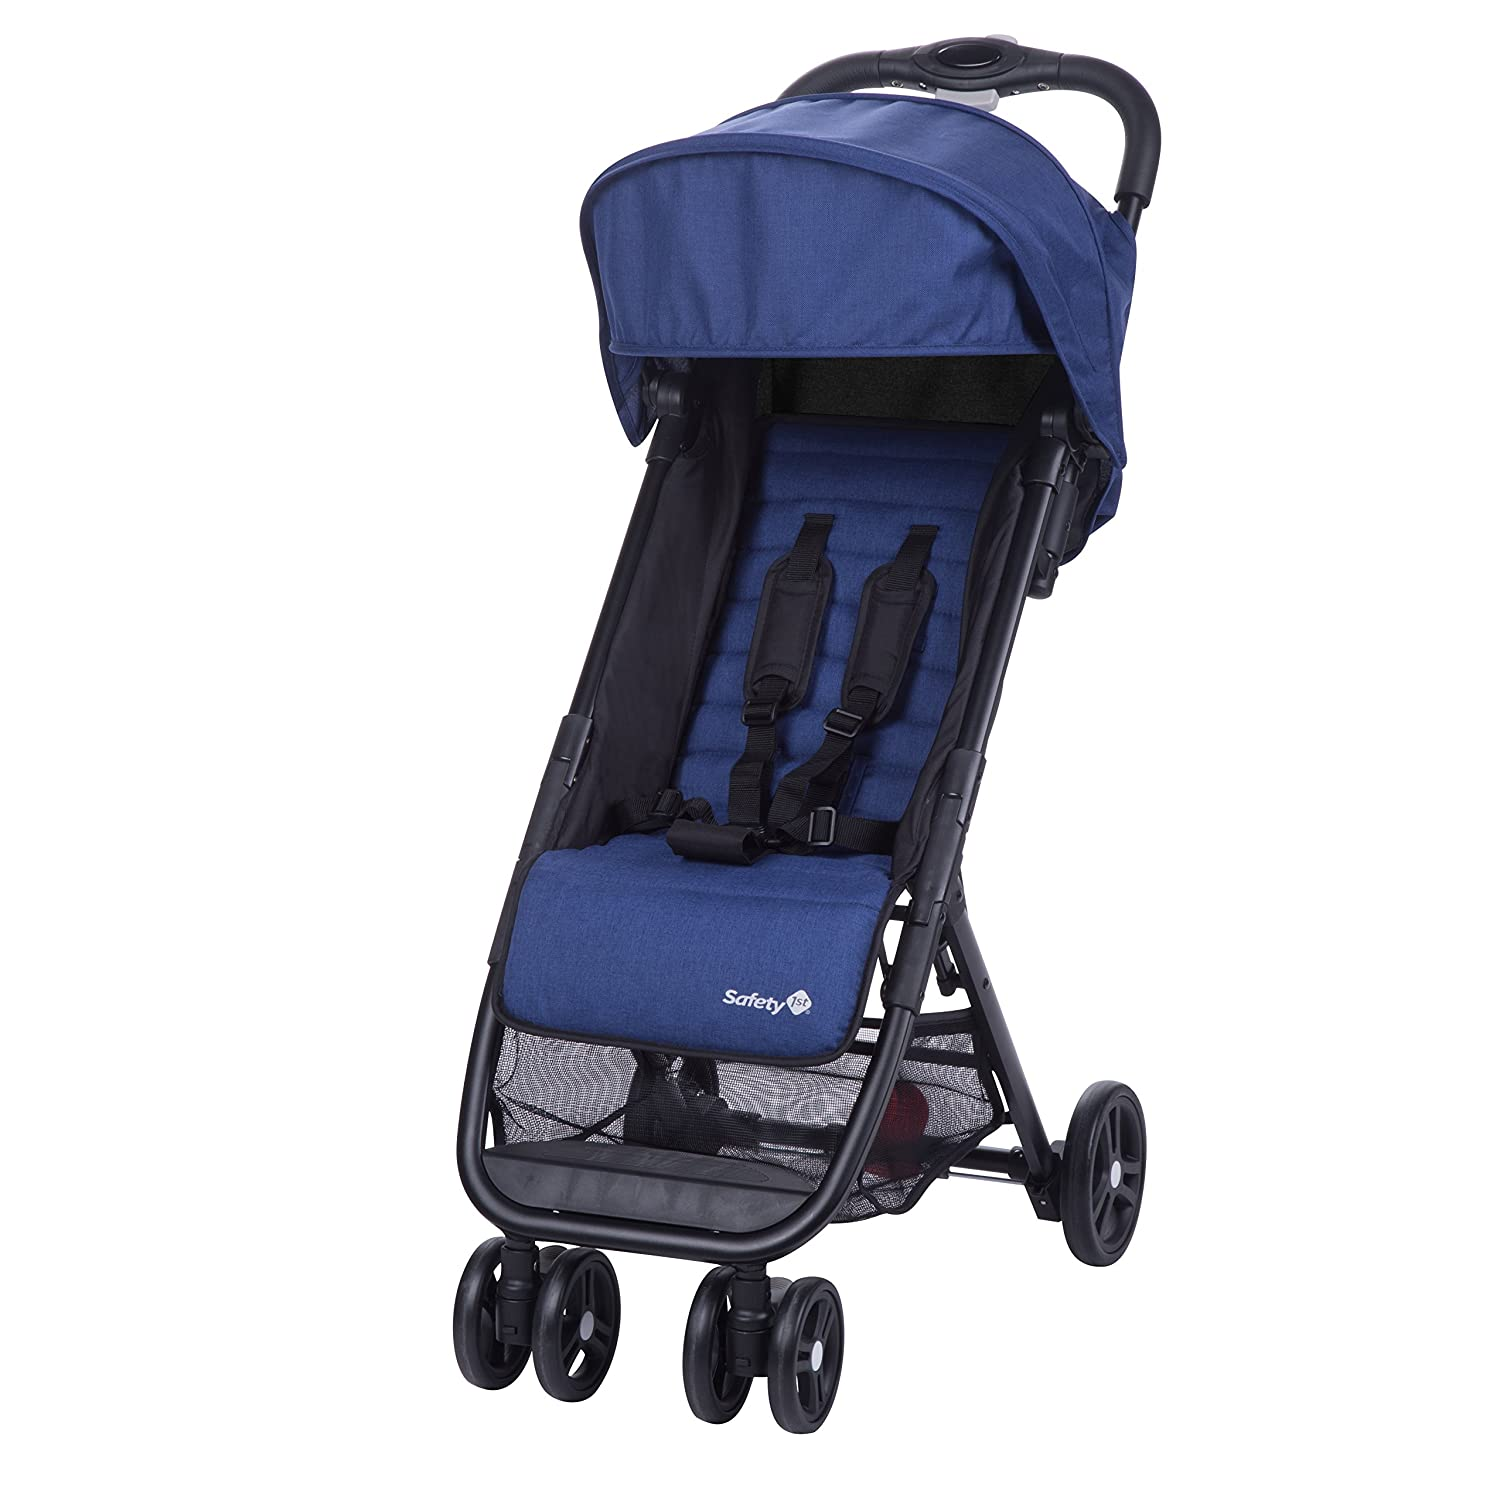 Safety 1st Teeny - Silla de paseo plegable y multifuncional, unisex, color azul Dorel 1265667000